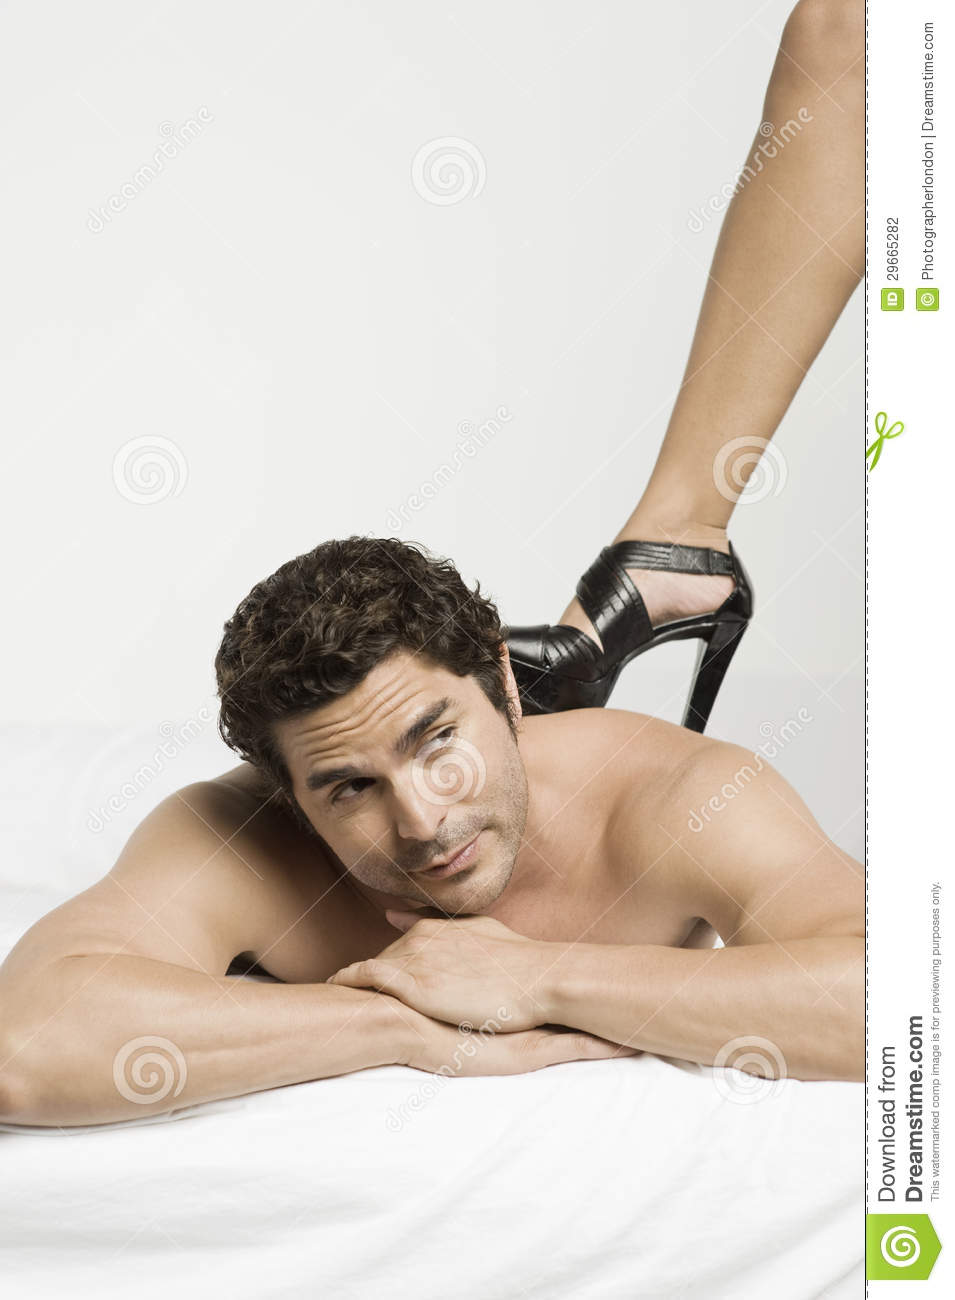 women dominating men on bed